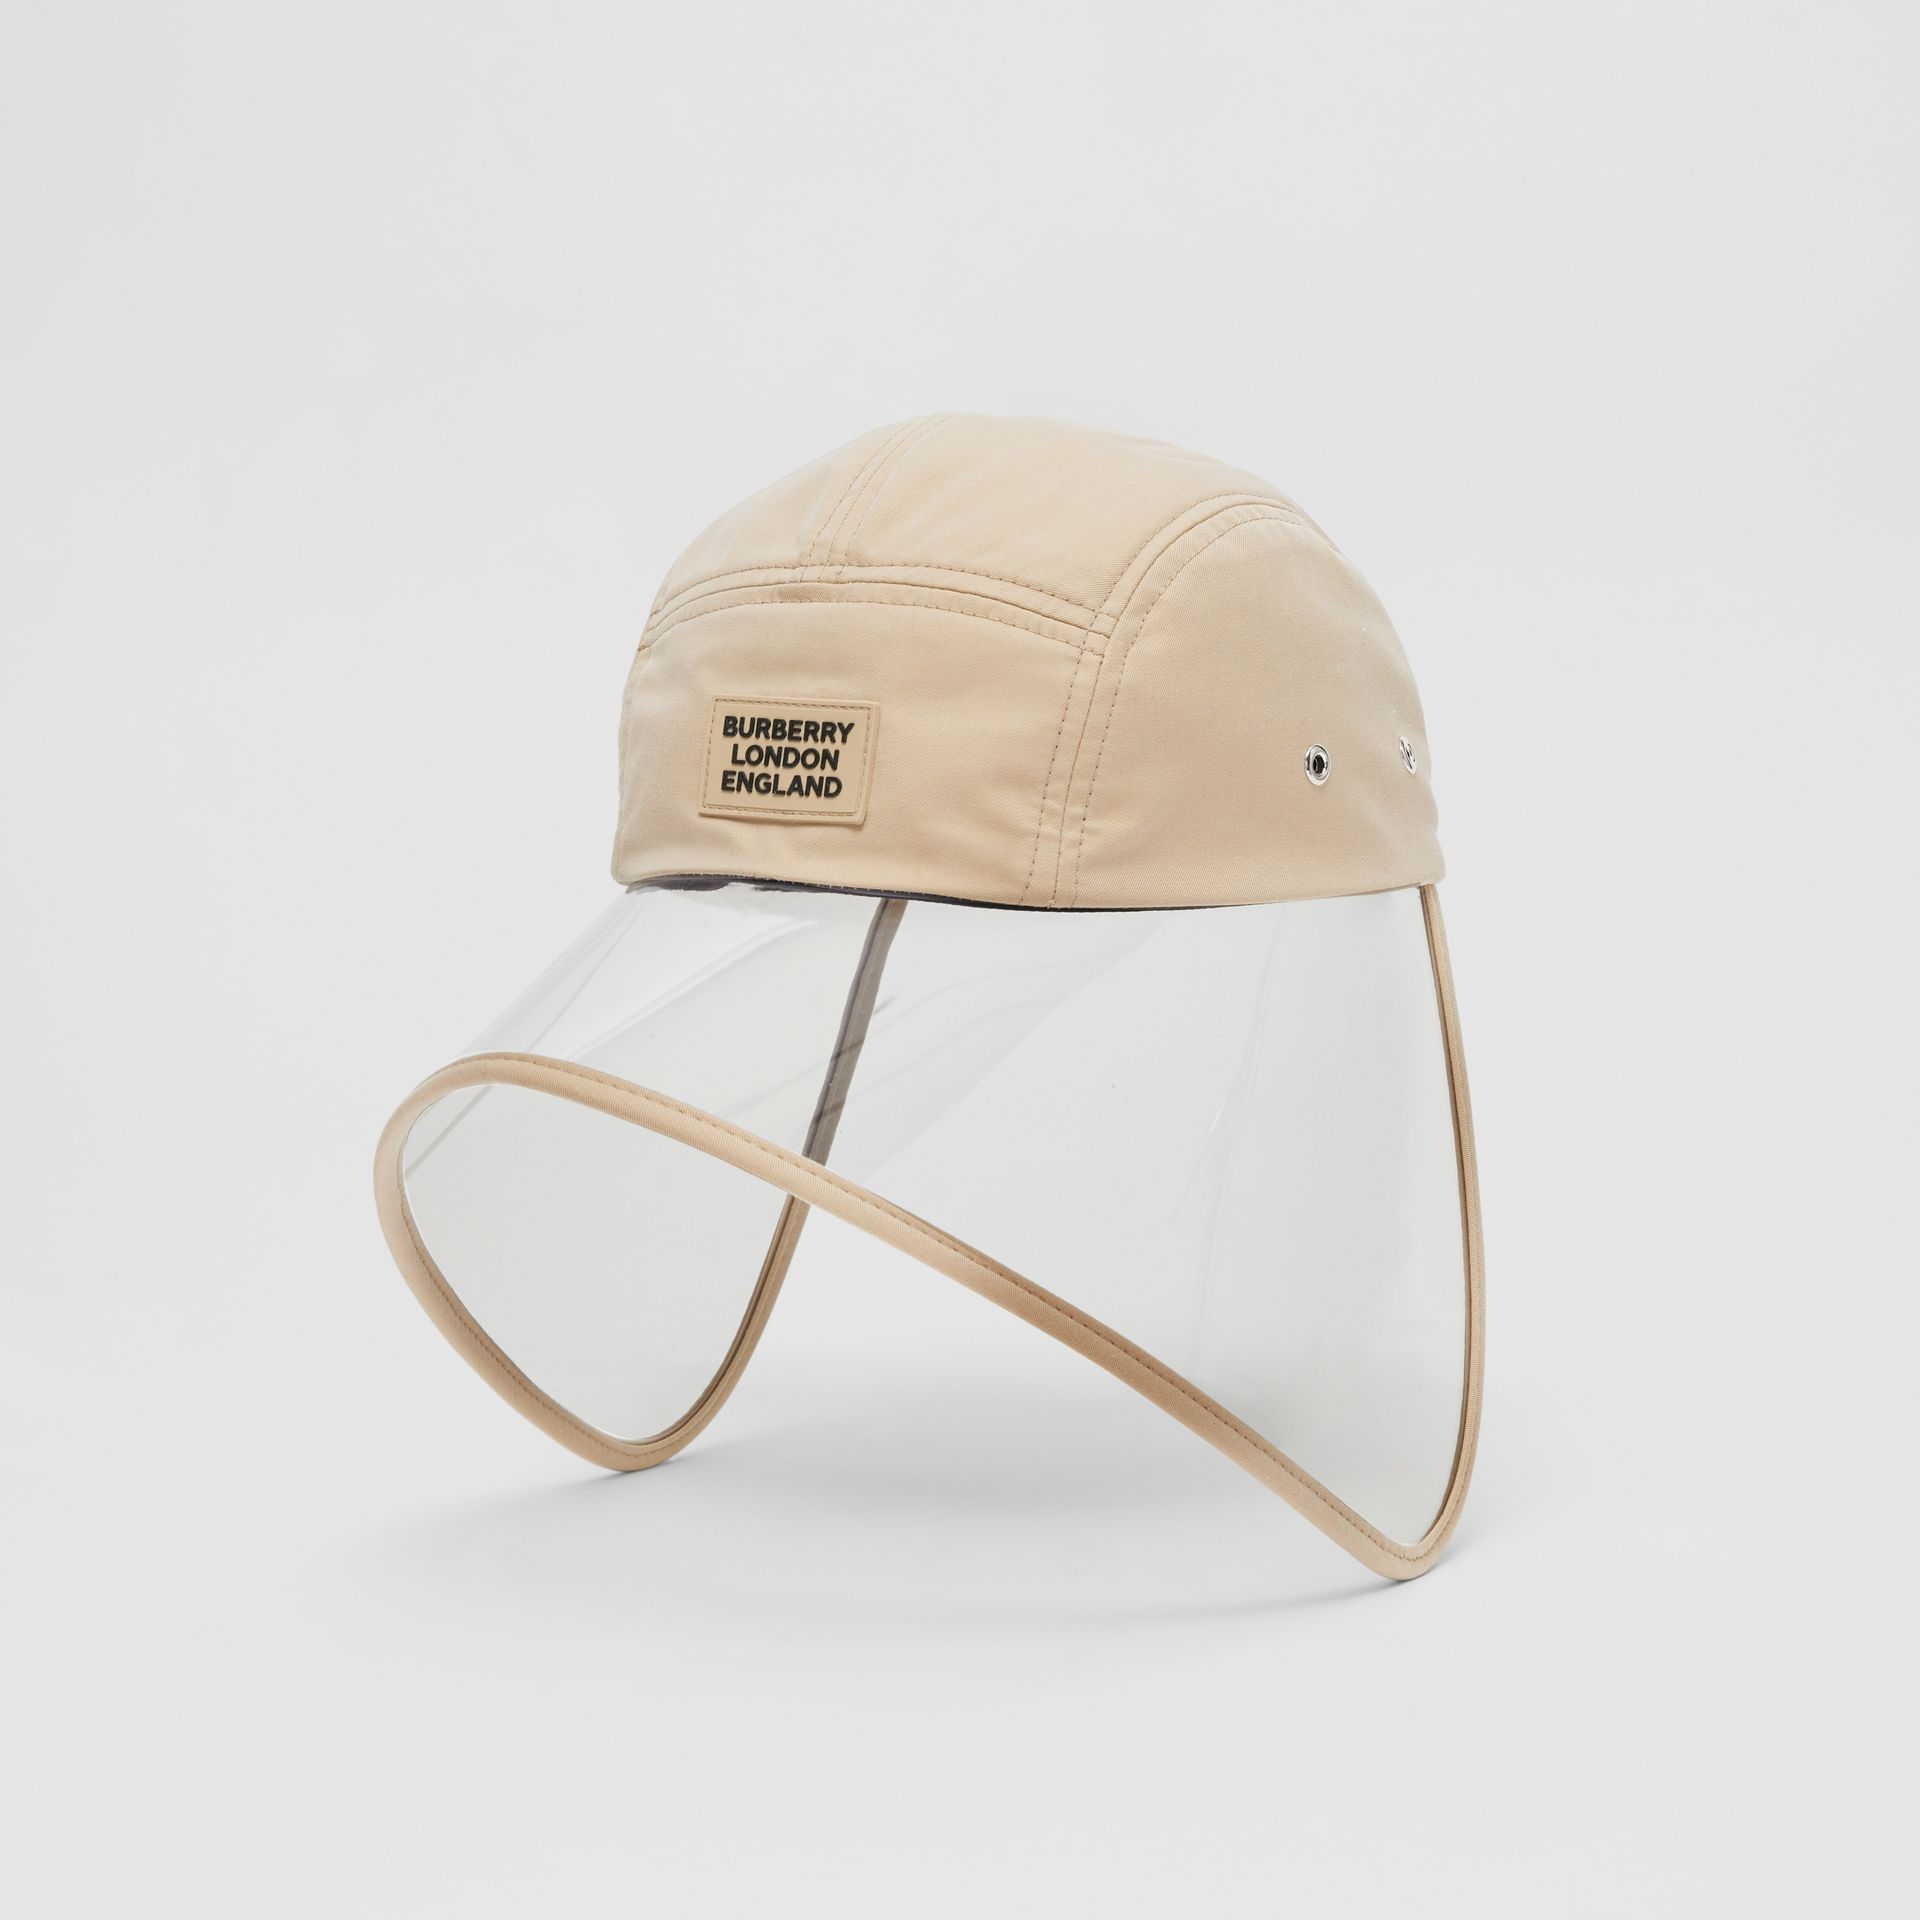 Casquette à bords larges transparente en sergé de coton - Exclusivité en ligne (Fauve Doux) | Burberry - photo de la galerie 5